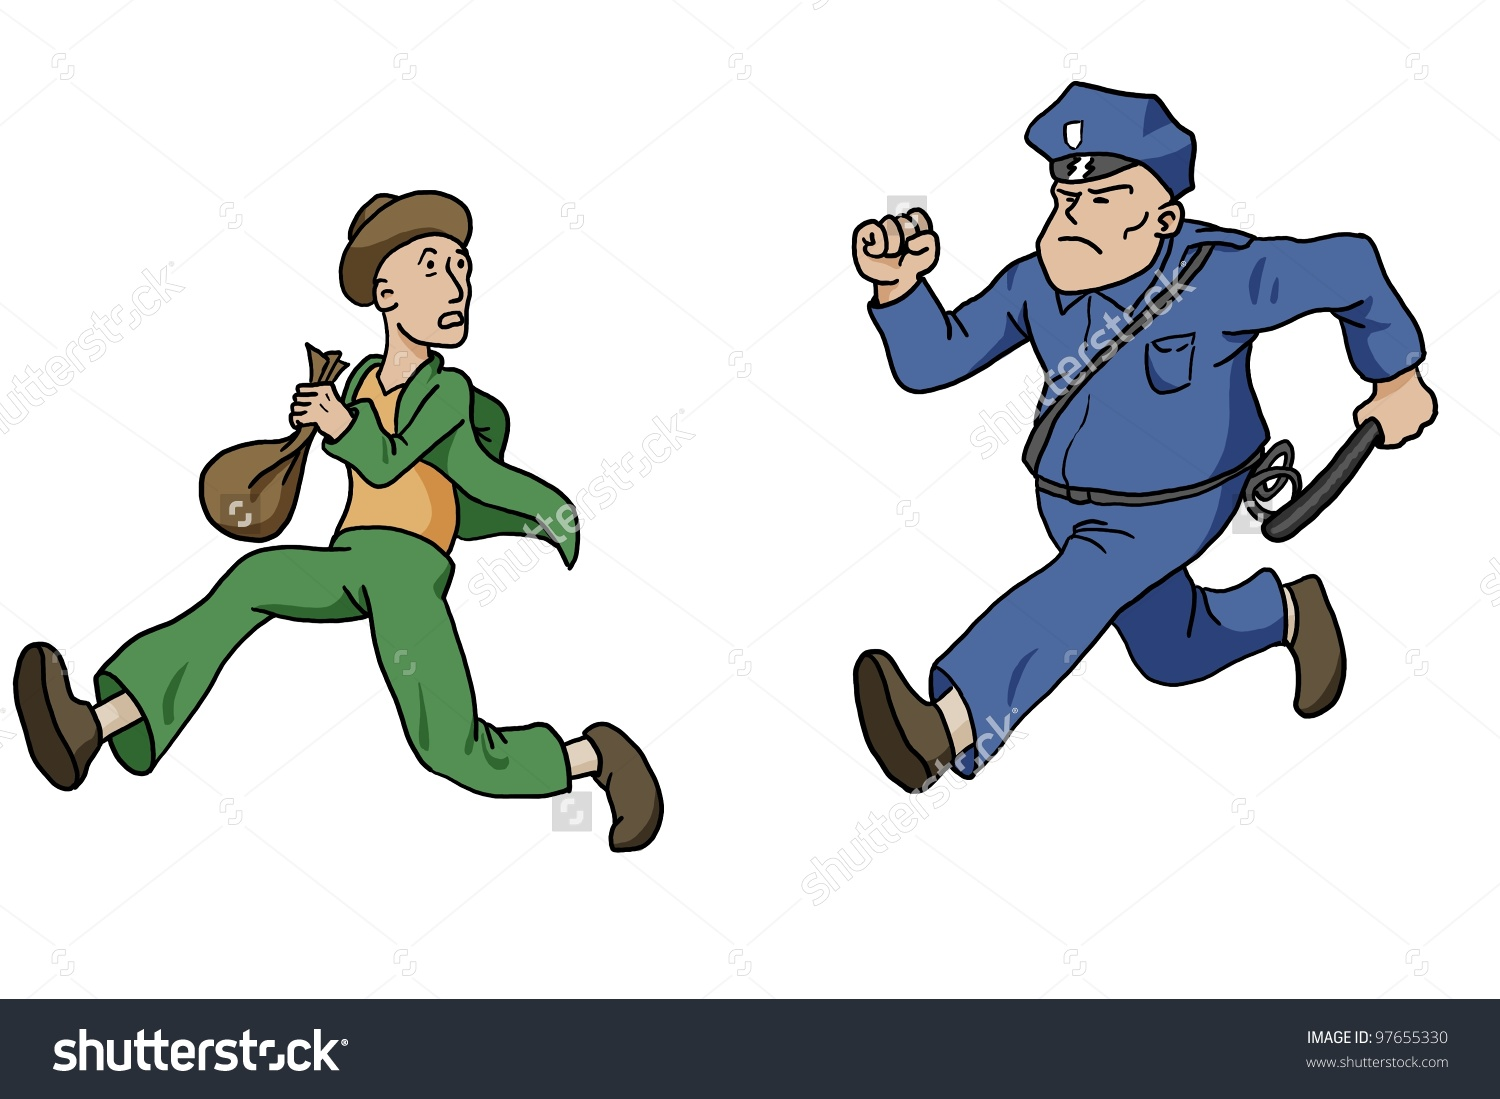 Police chase clipart clip art black and white Policeman Chasing Robber Stock Illustration 97655330 - Shutterstock clip art black and white